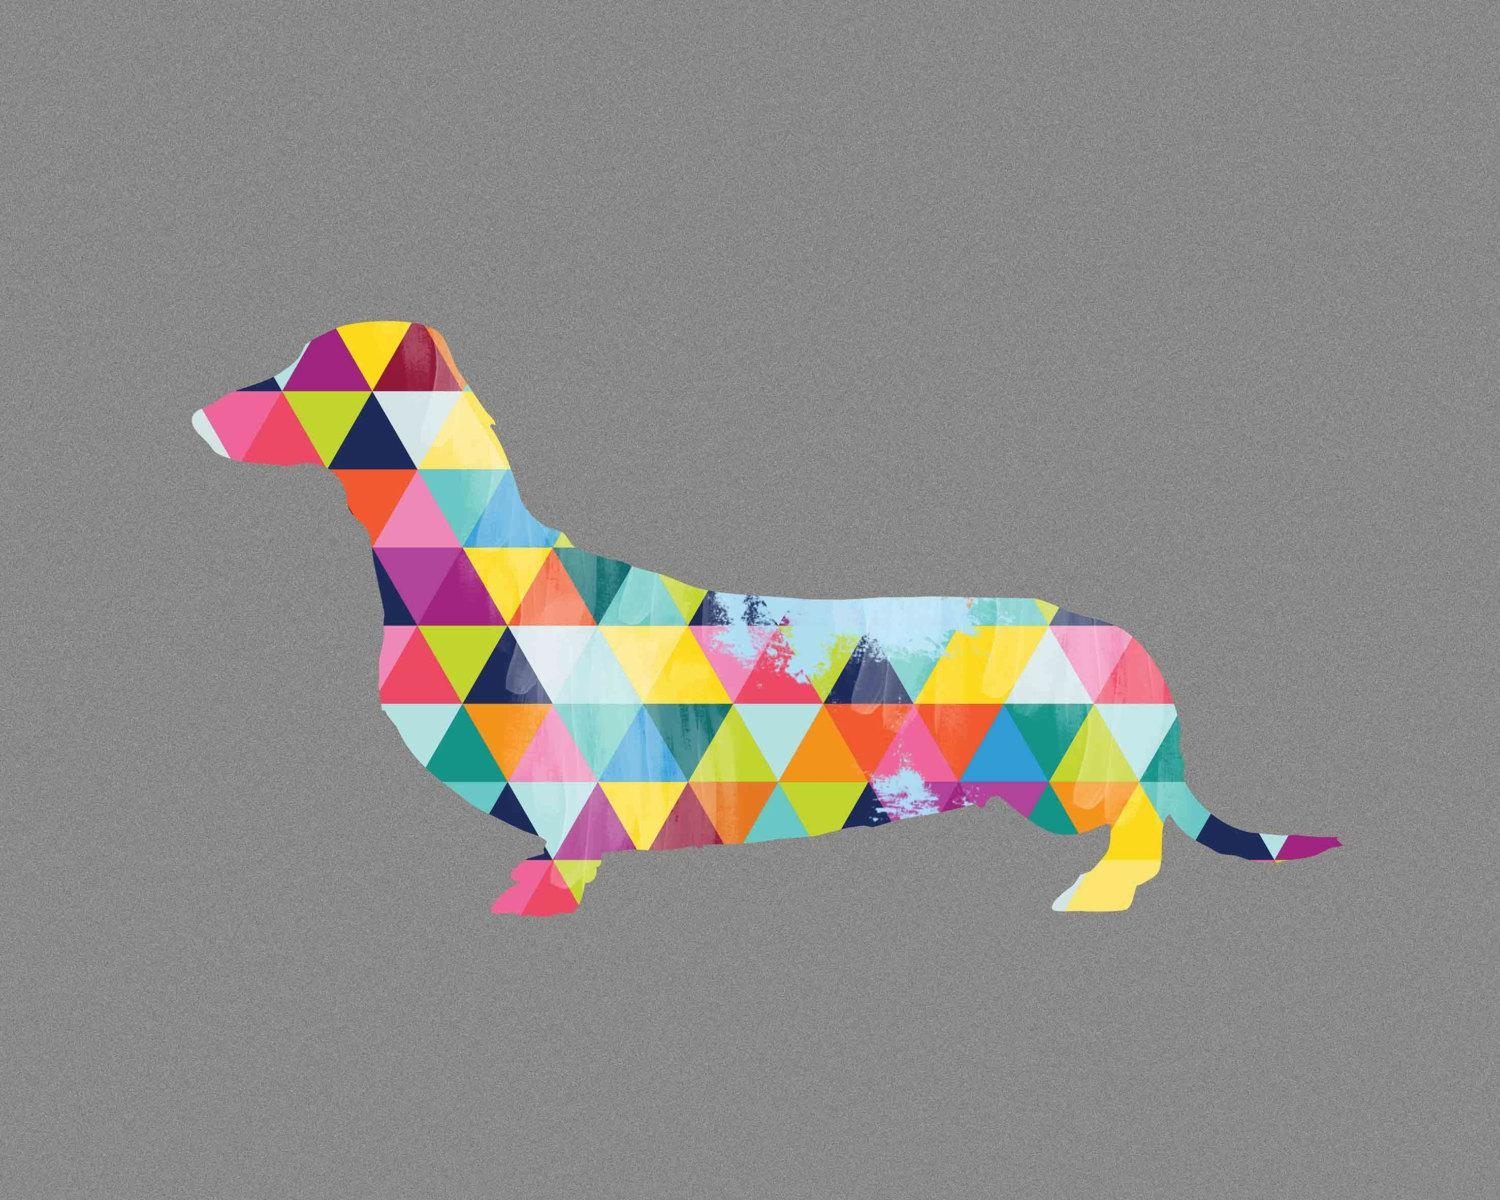 Geometric Dachshund Wall Art Print Poster Sausage Dog Breed Pertaining To Dachshund Wall Art (Photo 13 of 20)